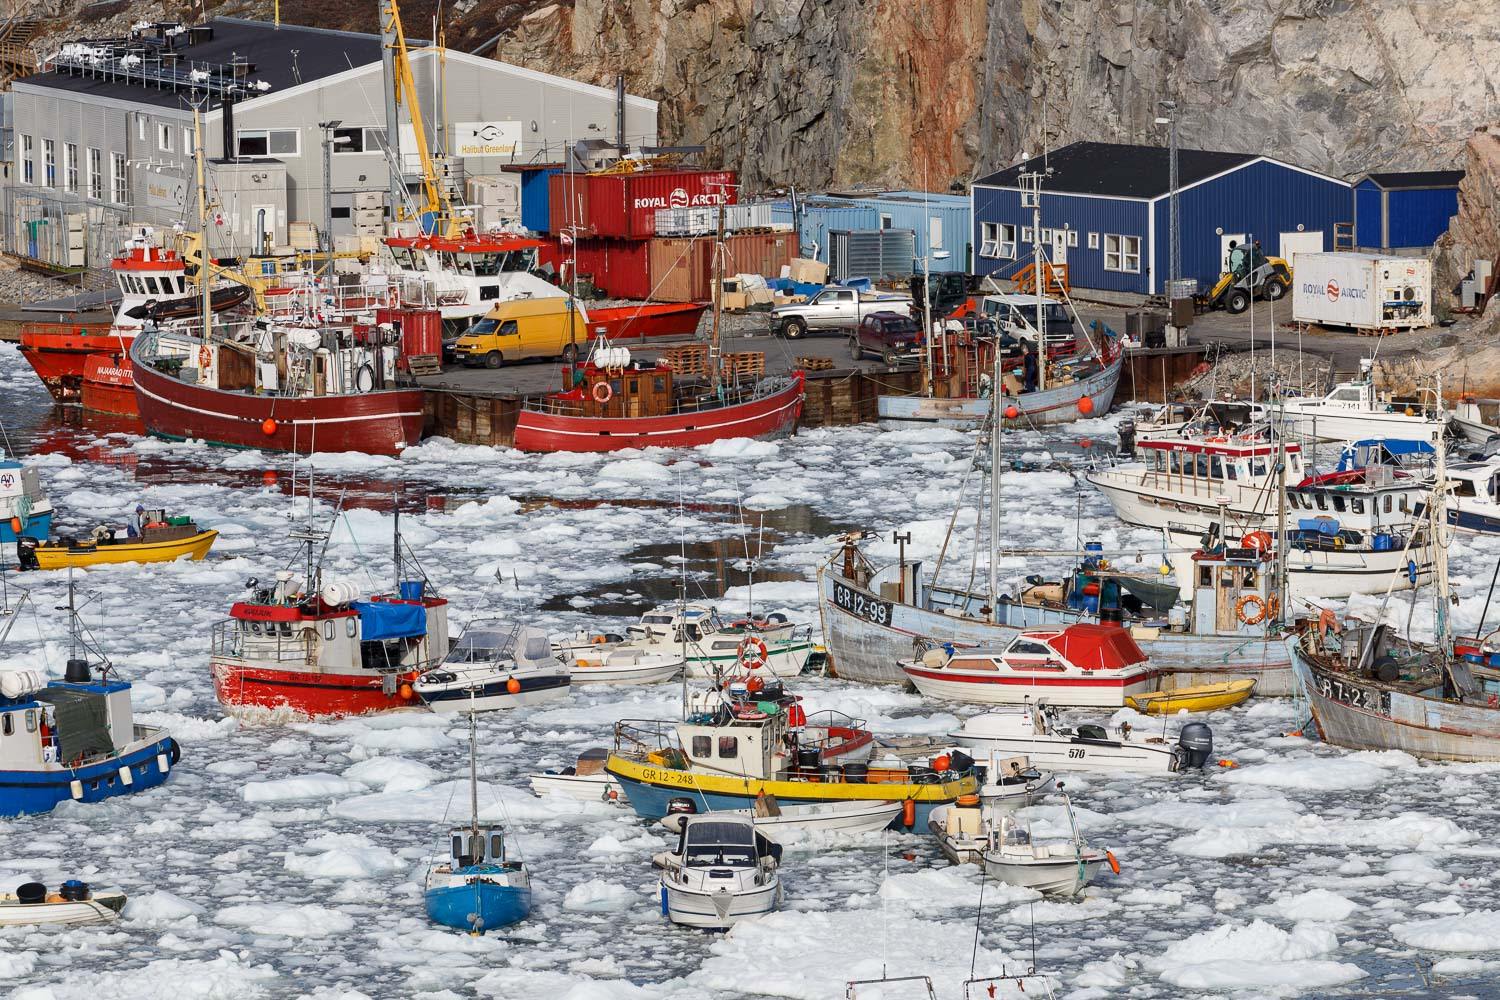 Boats in the Harbour, Ilulissat